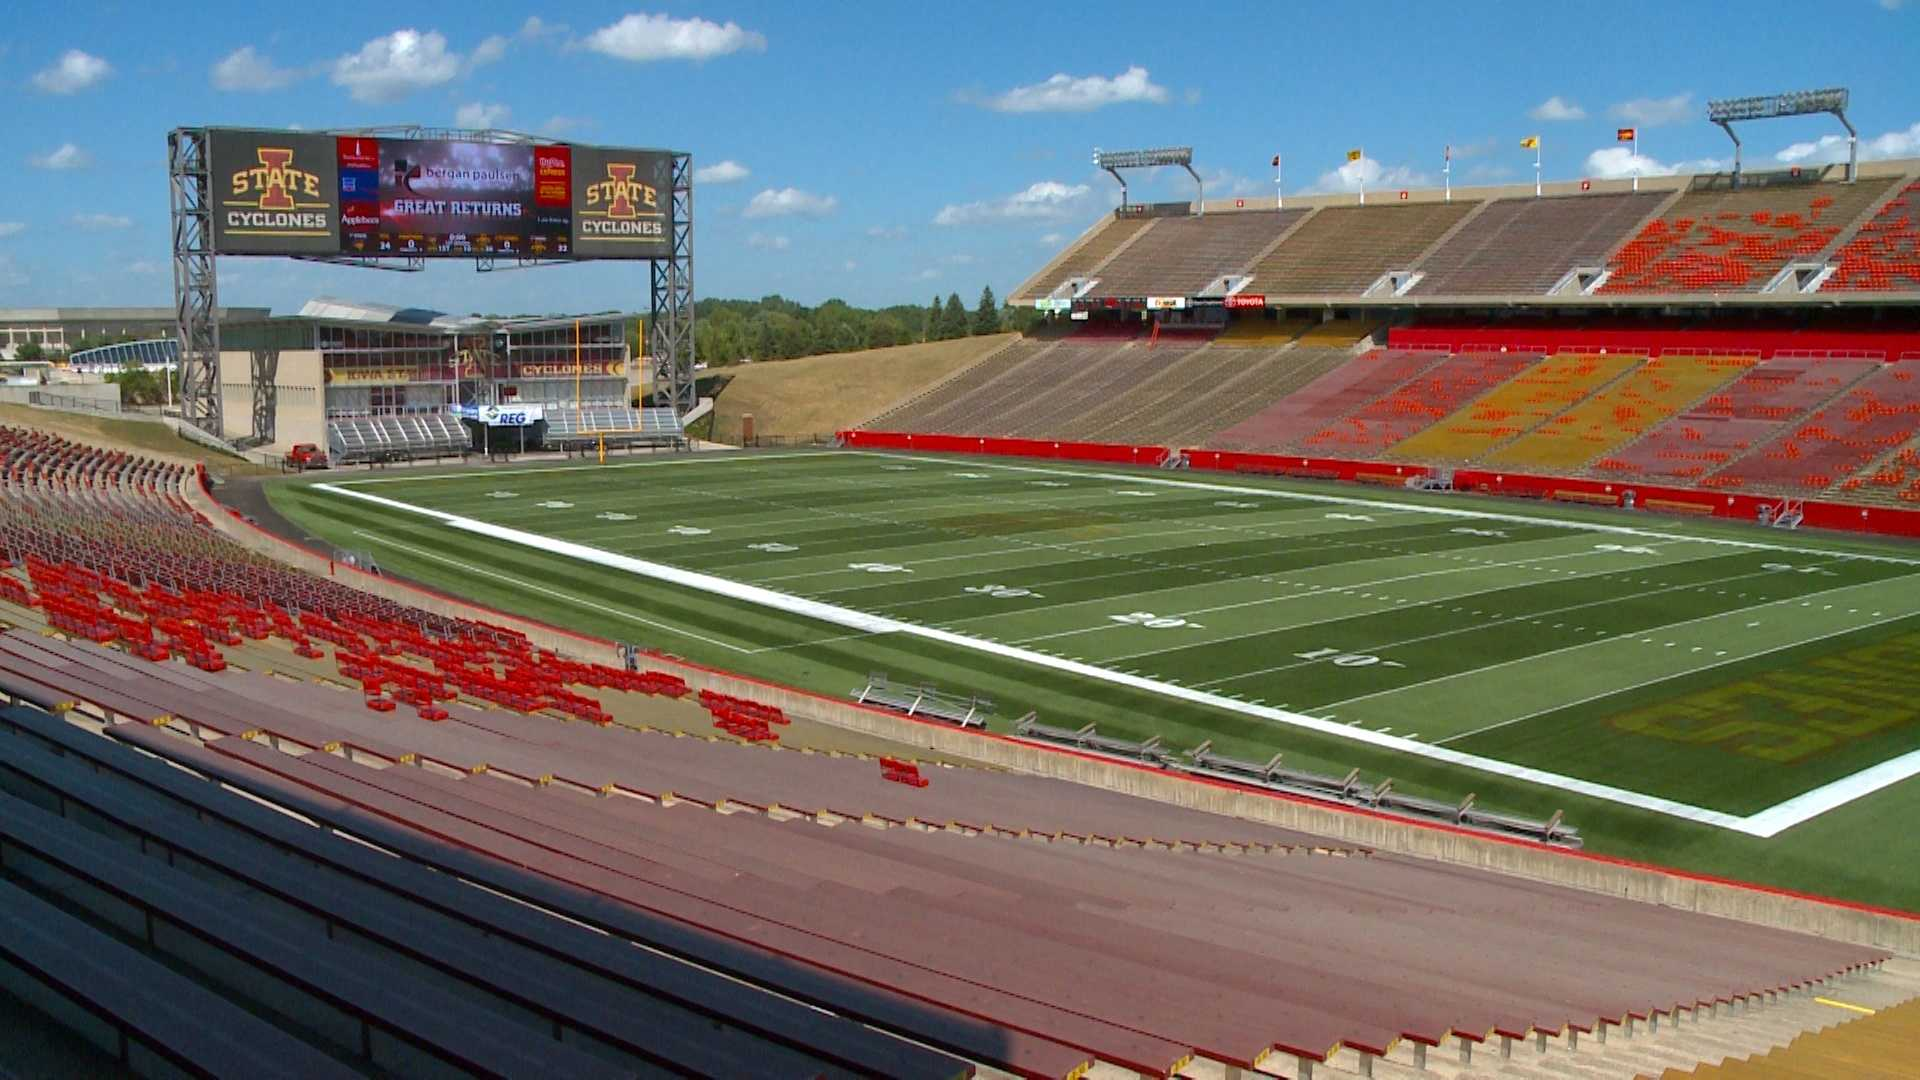 Iowa State football fans prepare for hot game